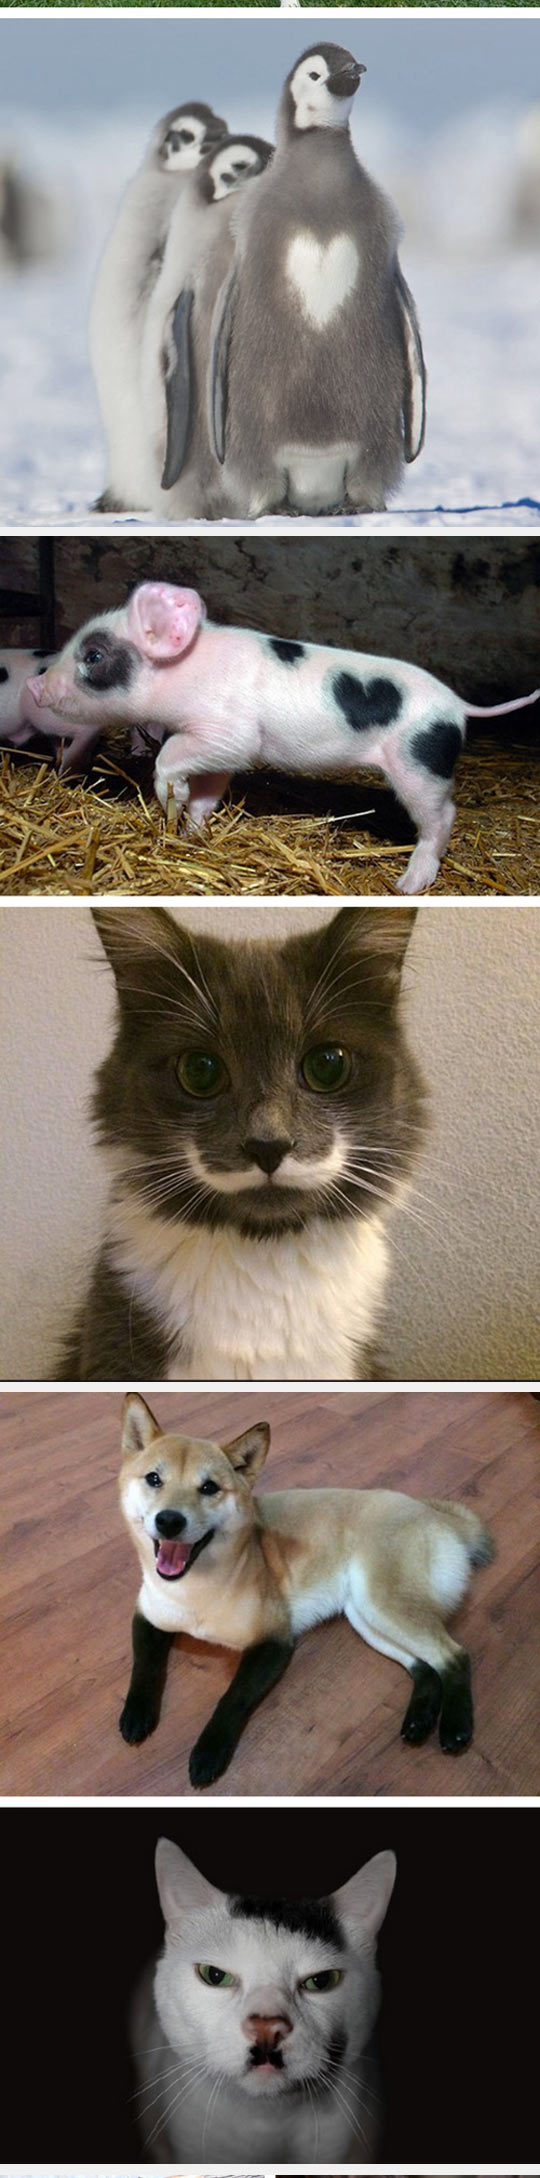 funny-dog-cat-unusual-fur-marking-pig